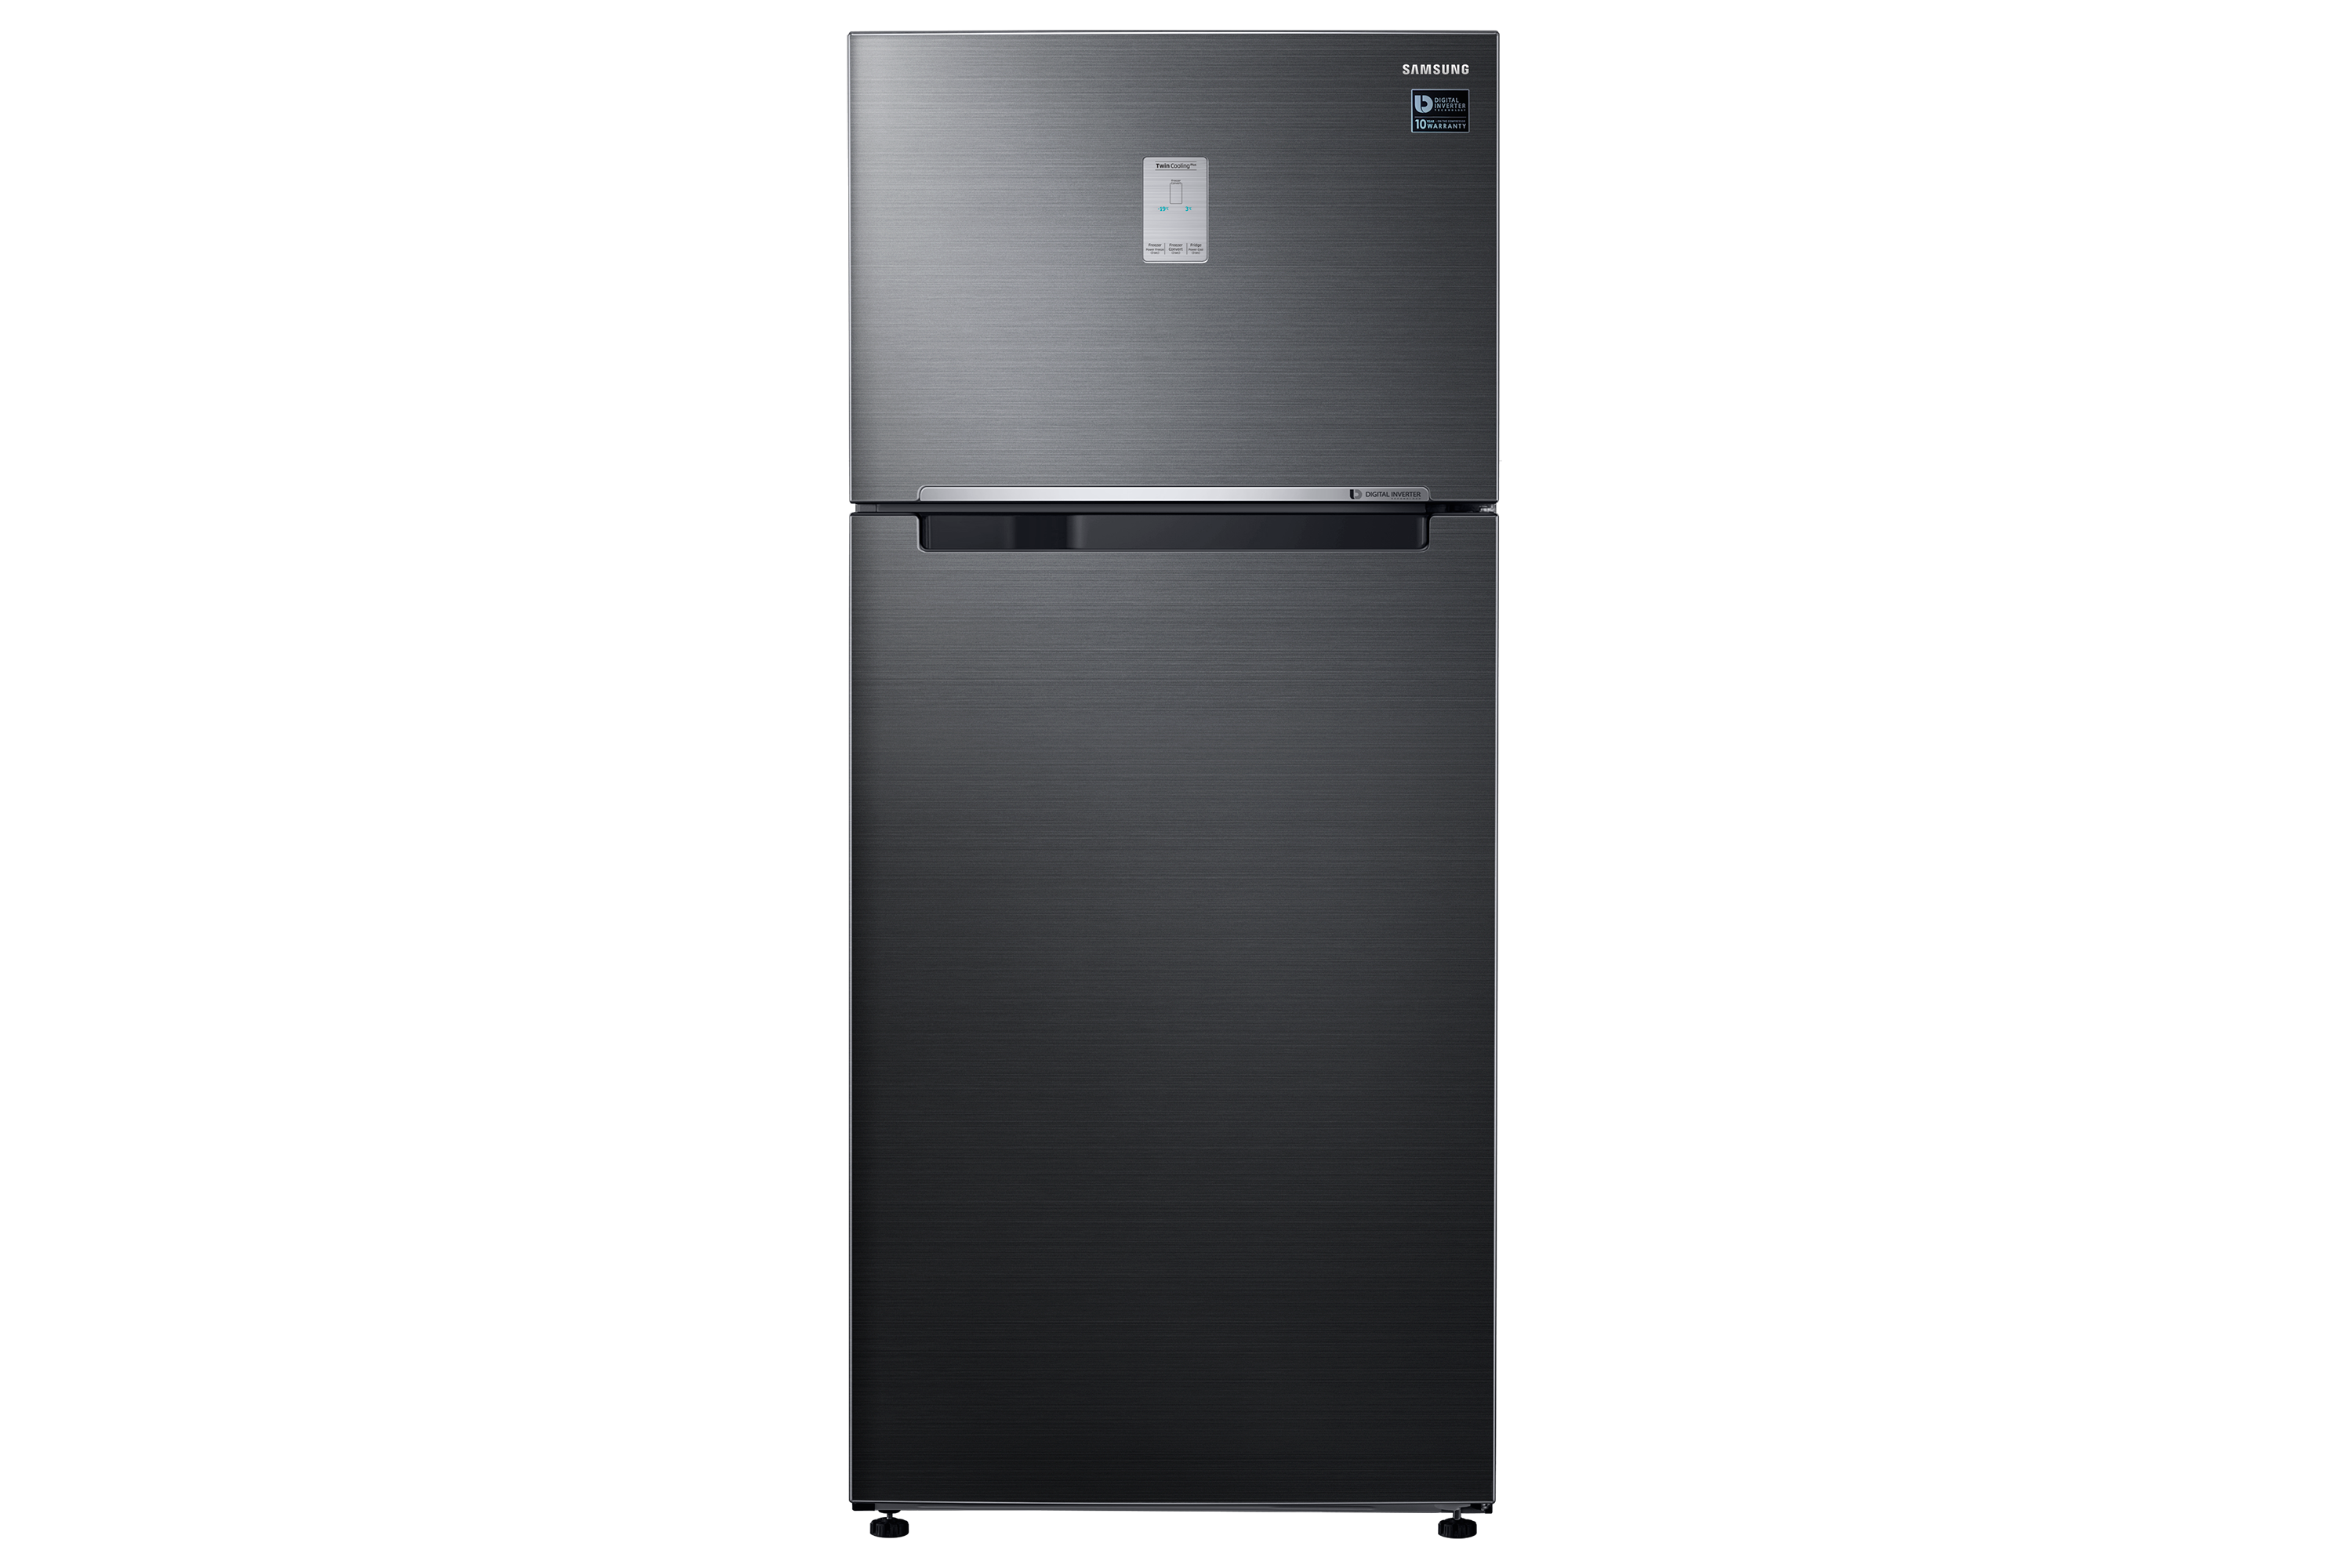 Top Mount Freezer With Twin Cooling Plus 620l Samsung Support Malaysia